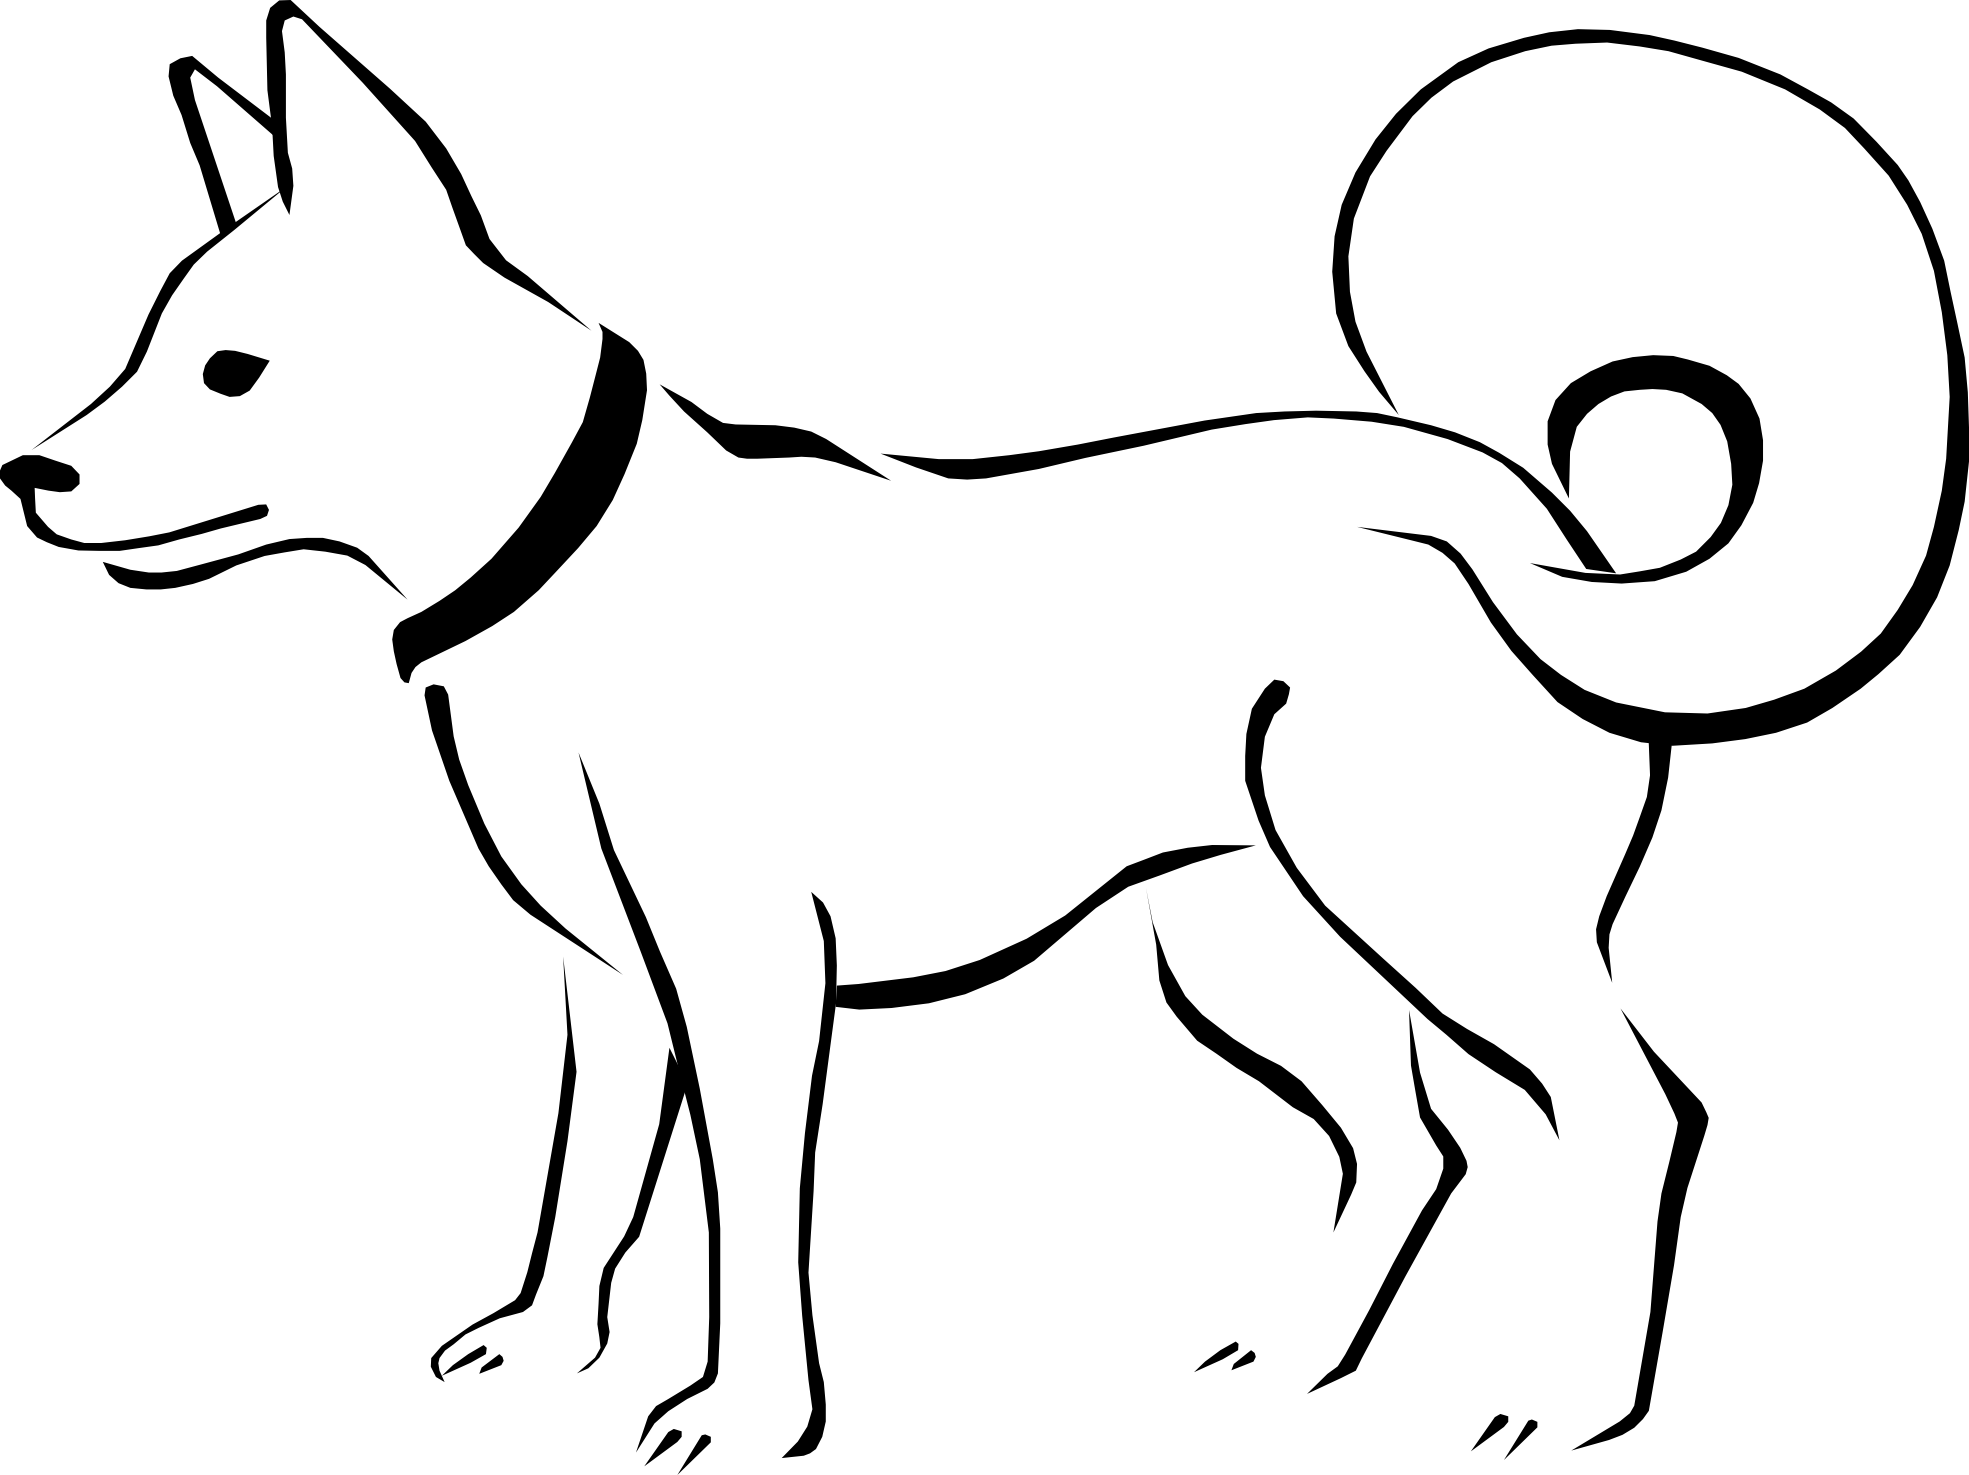 Black And White Line Drawings Of Animals : Dog drawings clip art clipart best